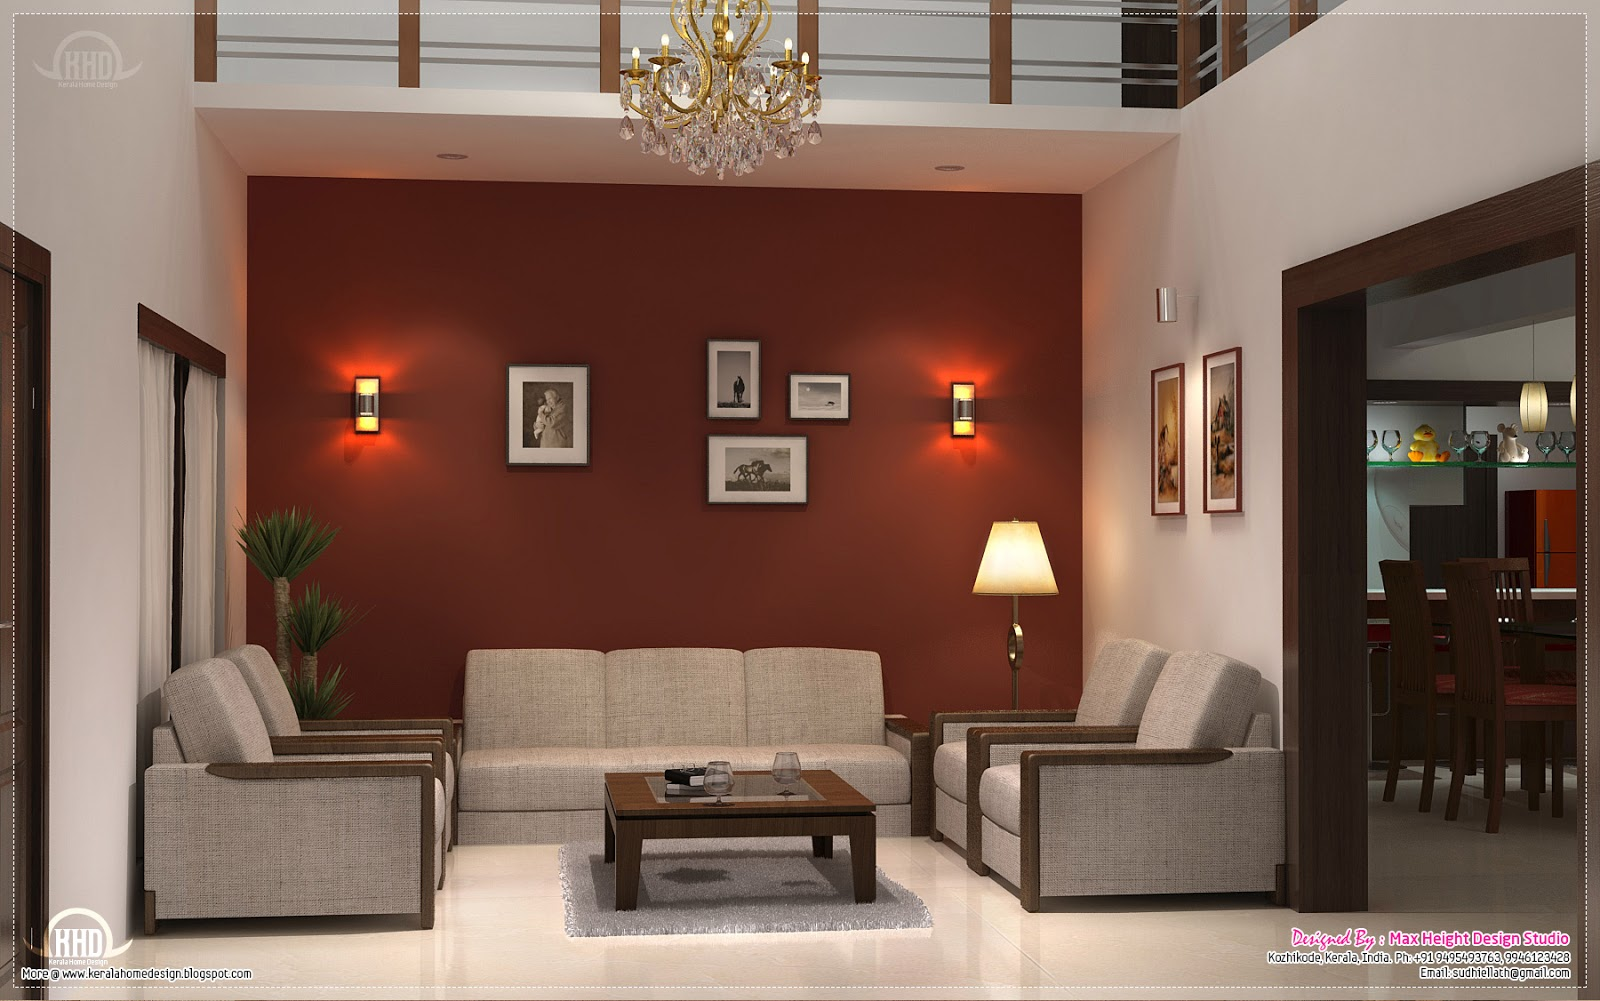 Home interior design ideas home kerala plans for Interior design house outside